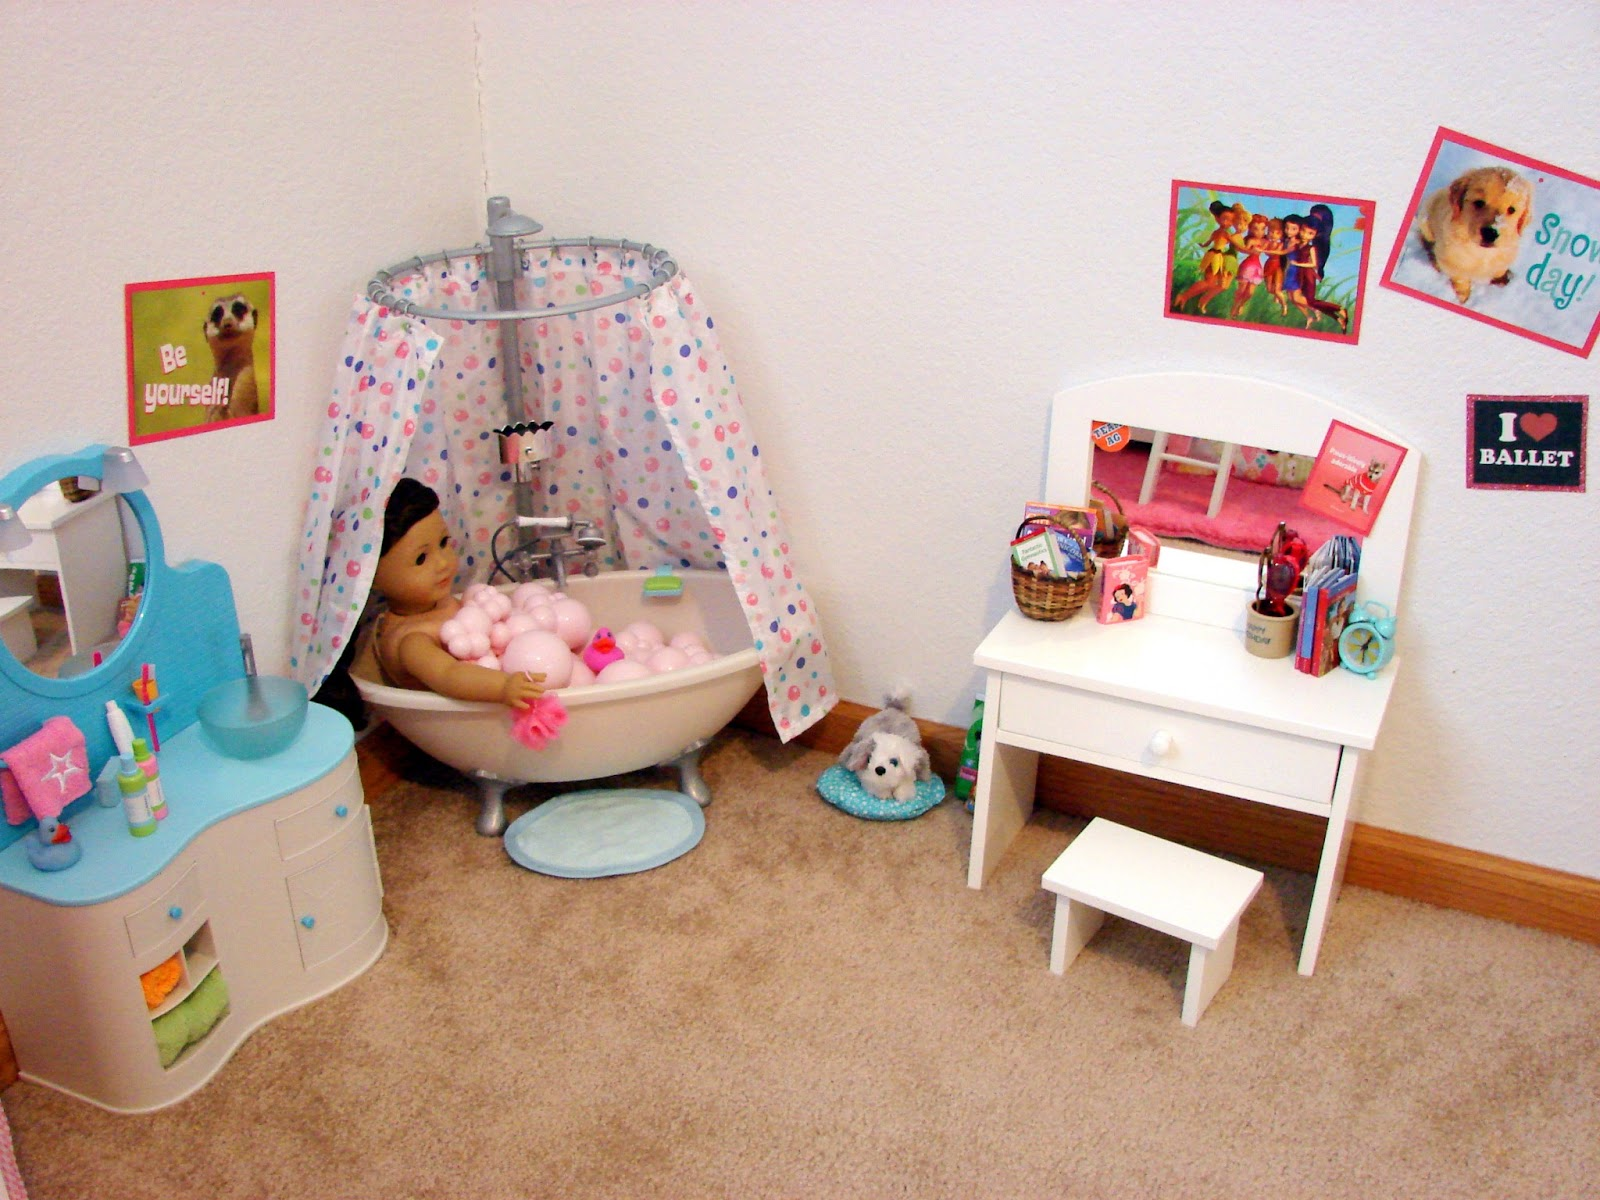 Our Doll Play Area   The Bathroom. American Girl Doll Play  Our Doll Play Area   The Bathroom